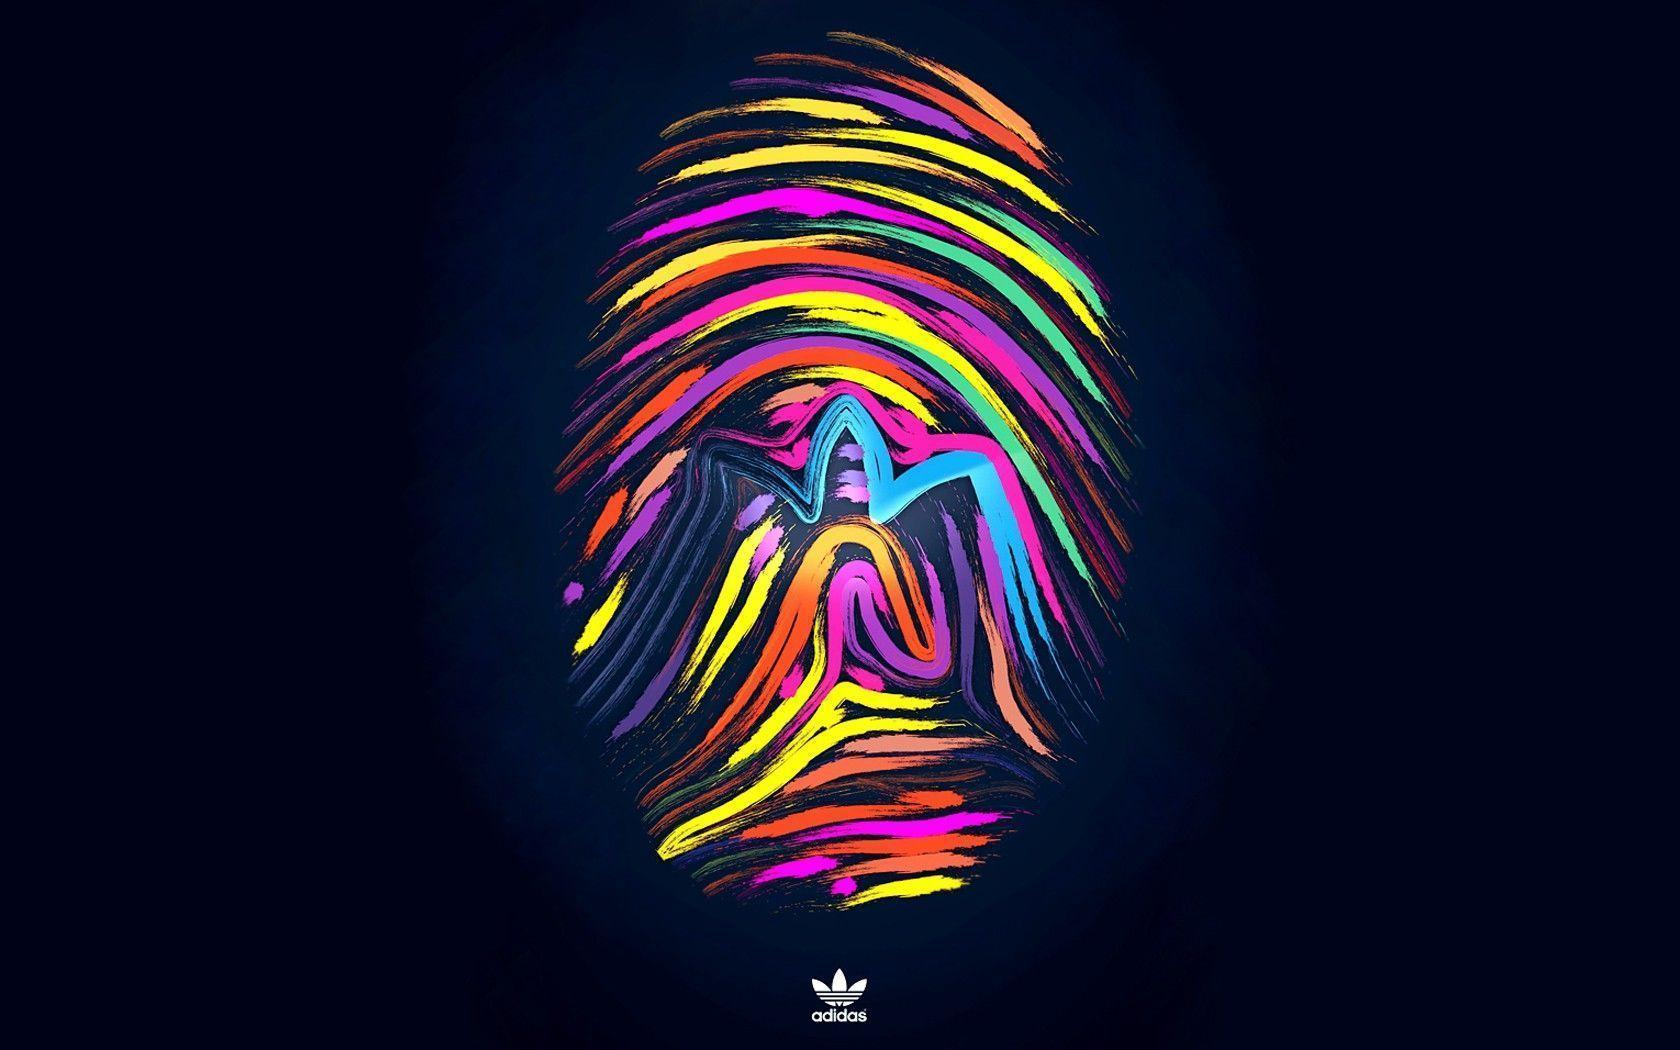 Adidas 2016 Wallpapers 1680x1050